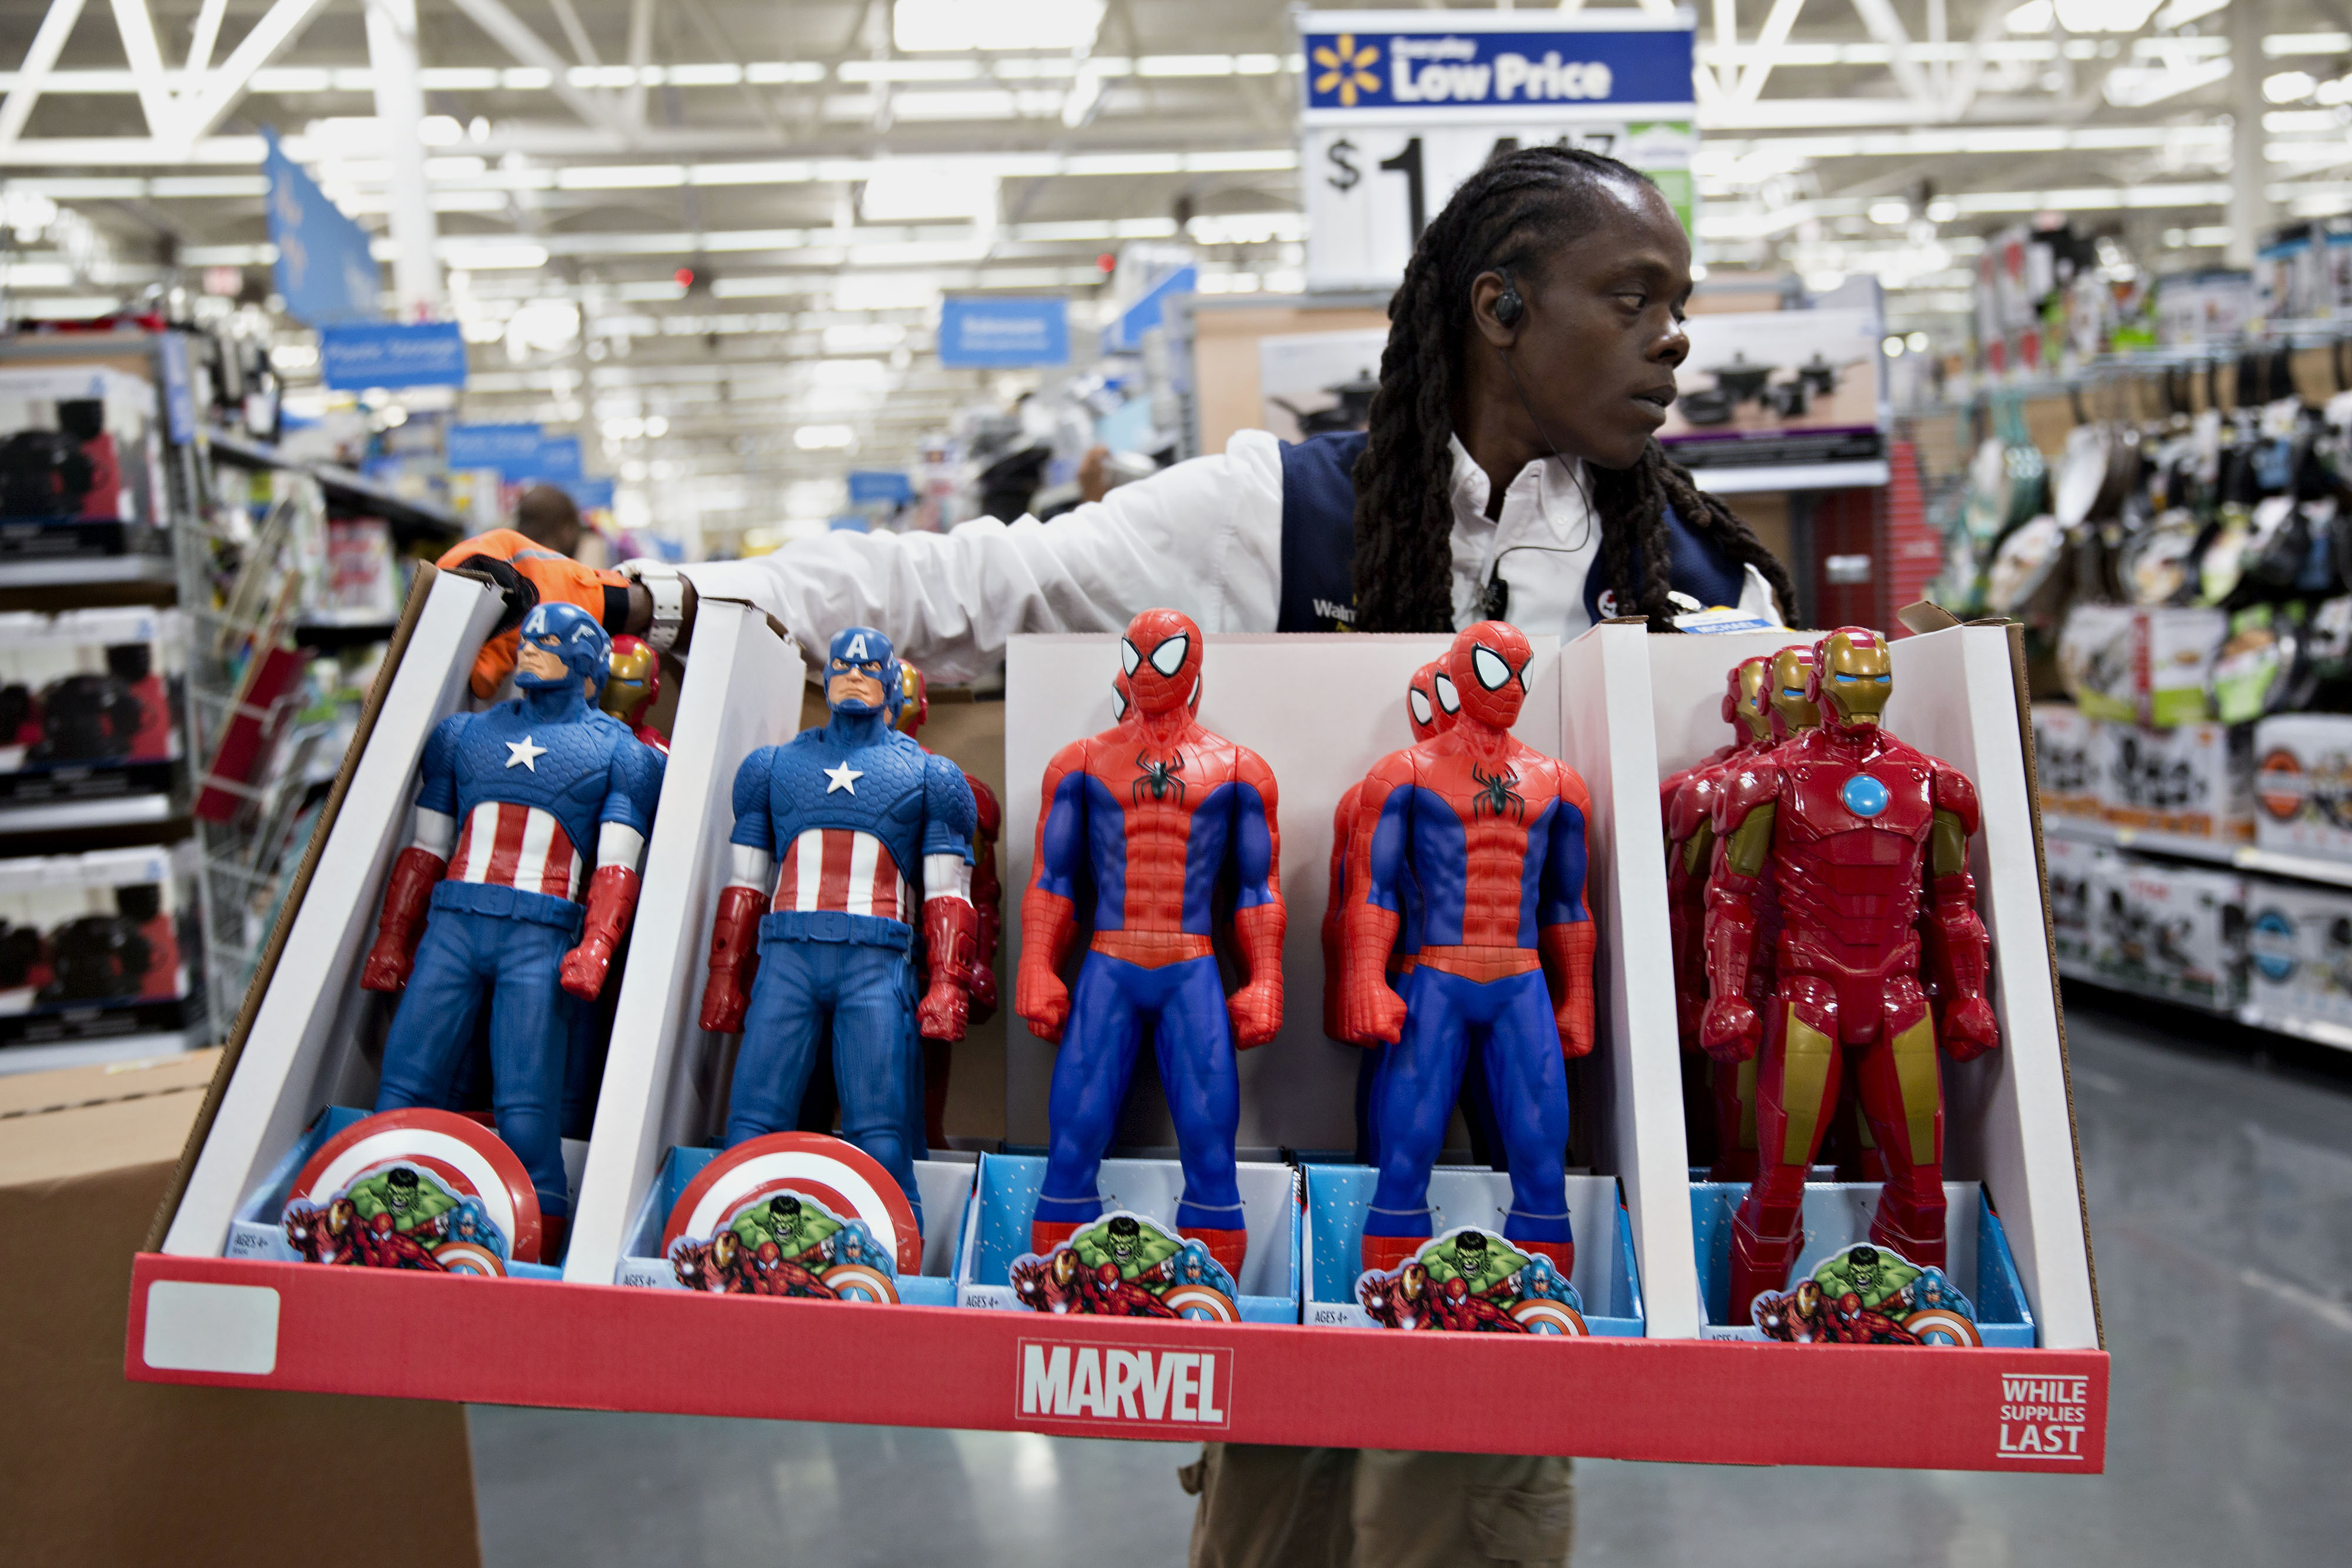 An employee moves Marvel Entertainment LLC action figures in preparation for Black Friday at a Wal-Mart Stores Inc. location in Chicago, Illinois, U.S., on Wednesday, Nov. 25, 2015.